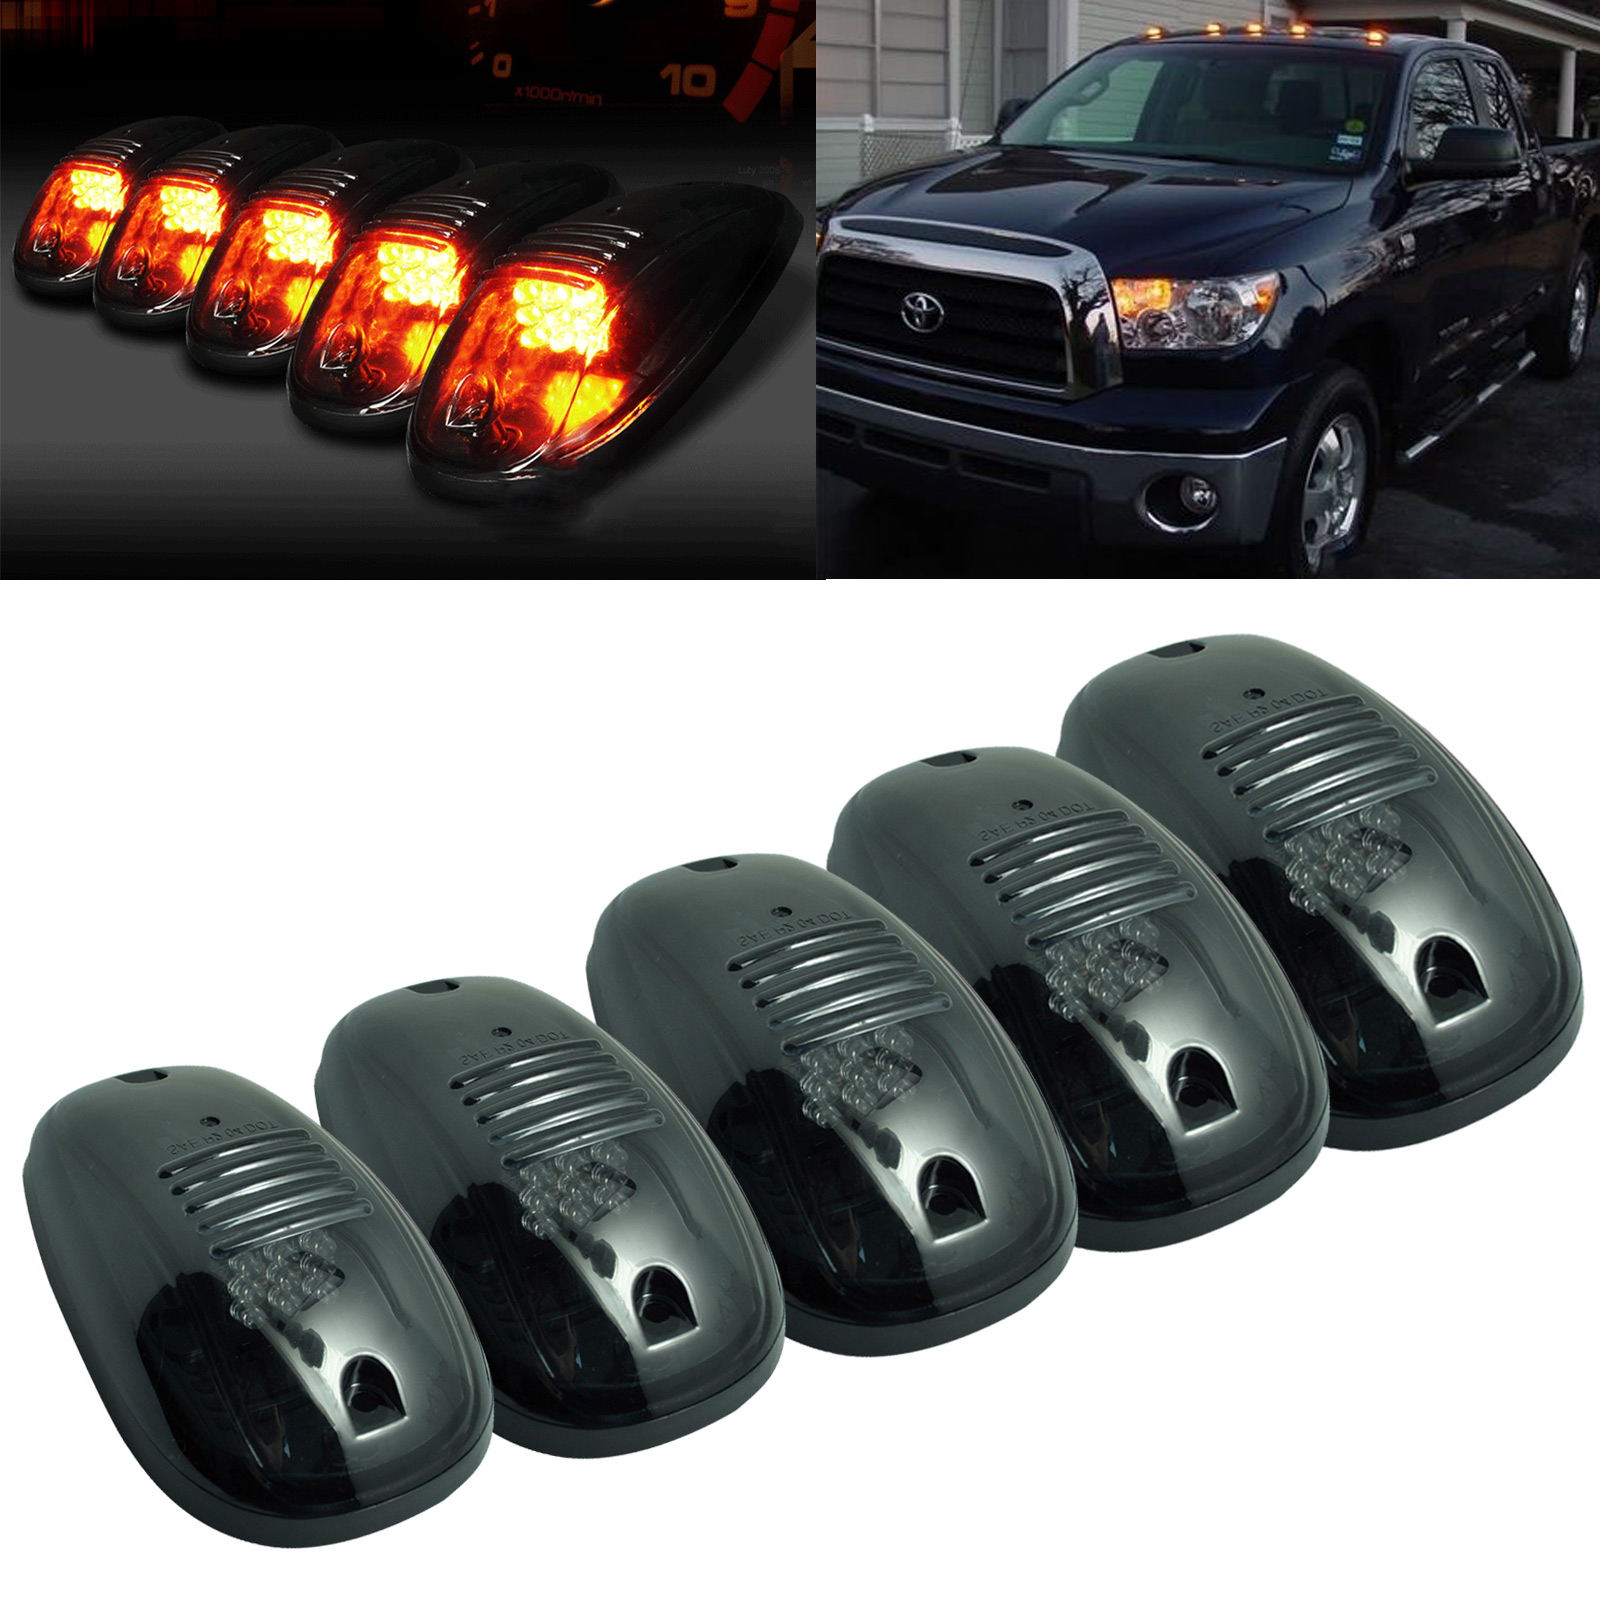 5pcs Car Smoked Amber Car LED Cab Roof Running Side Marker Clearance for Light Truck SUV